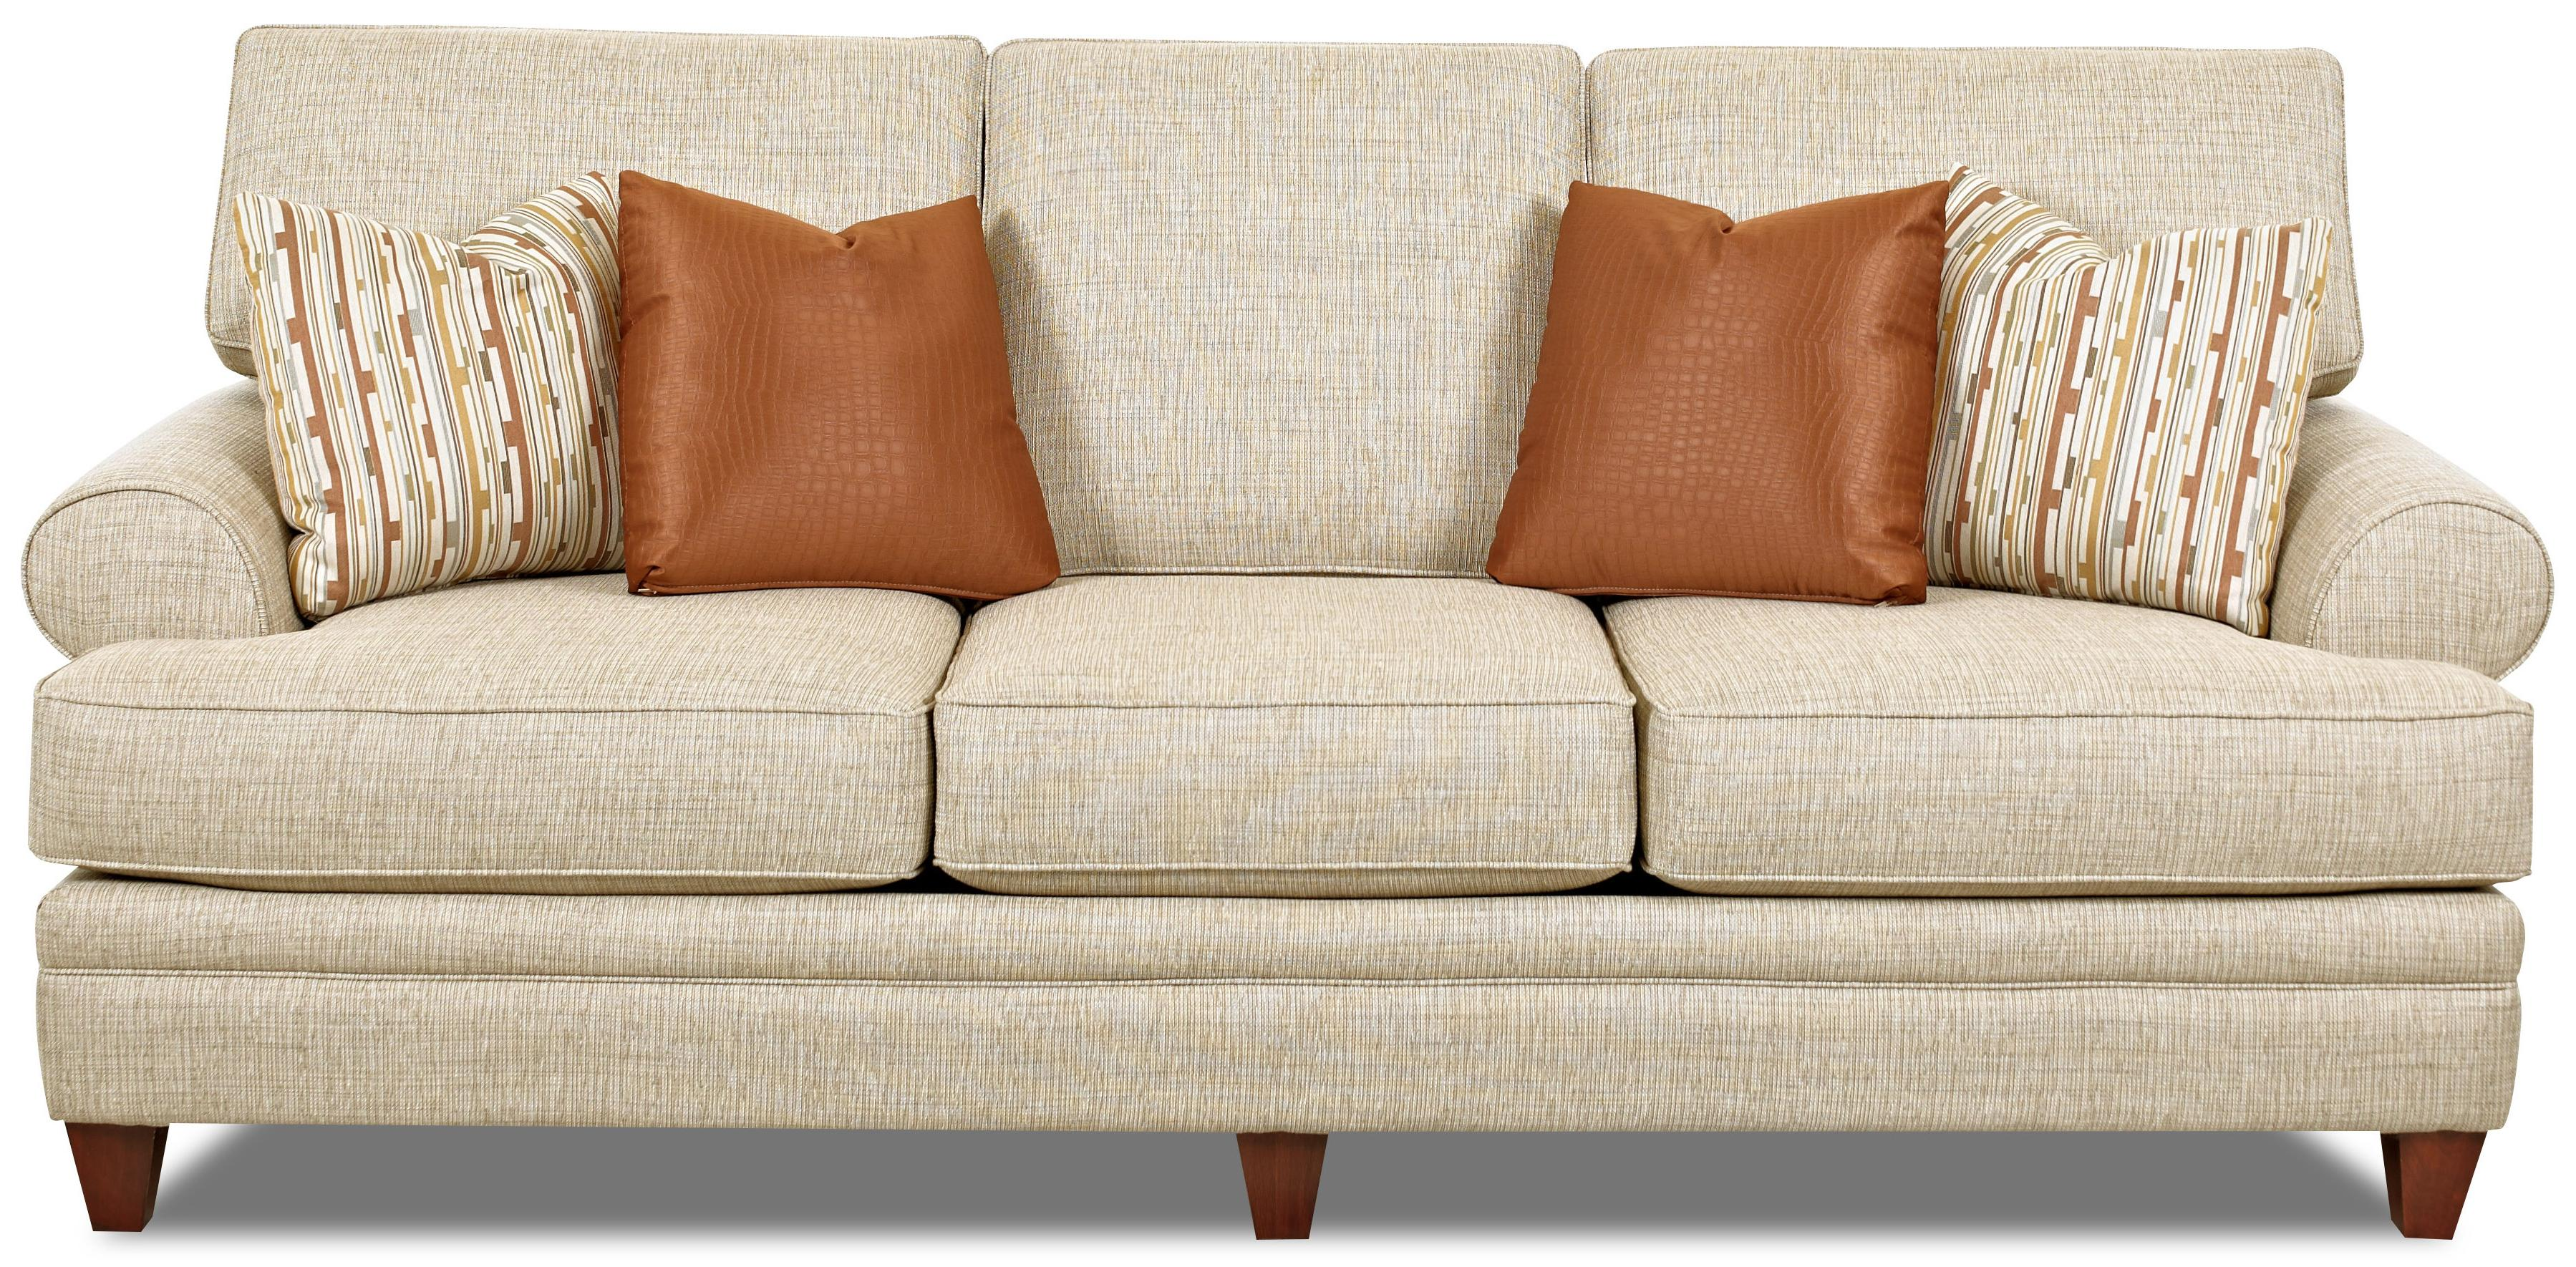 Klaussner Fresno Transitional Sofa With